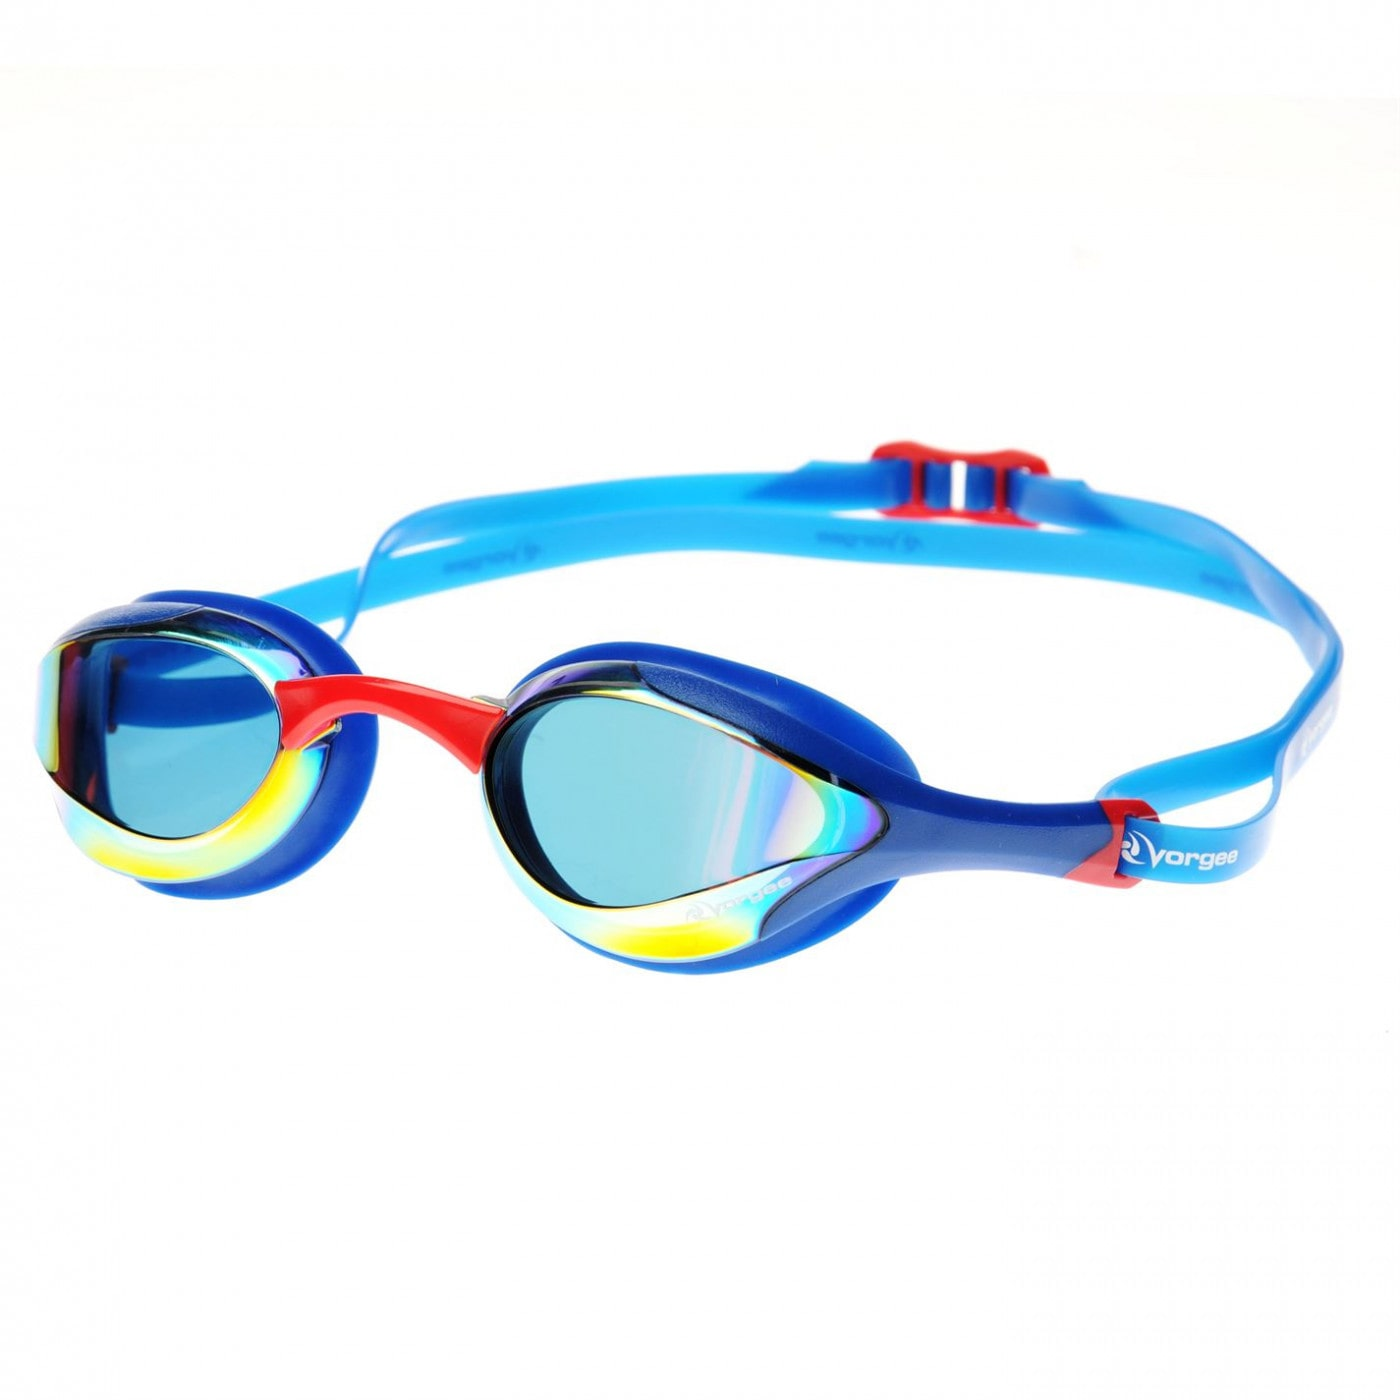 Vorgee Stealth mk2 Race Goggles